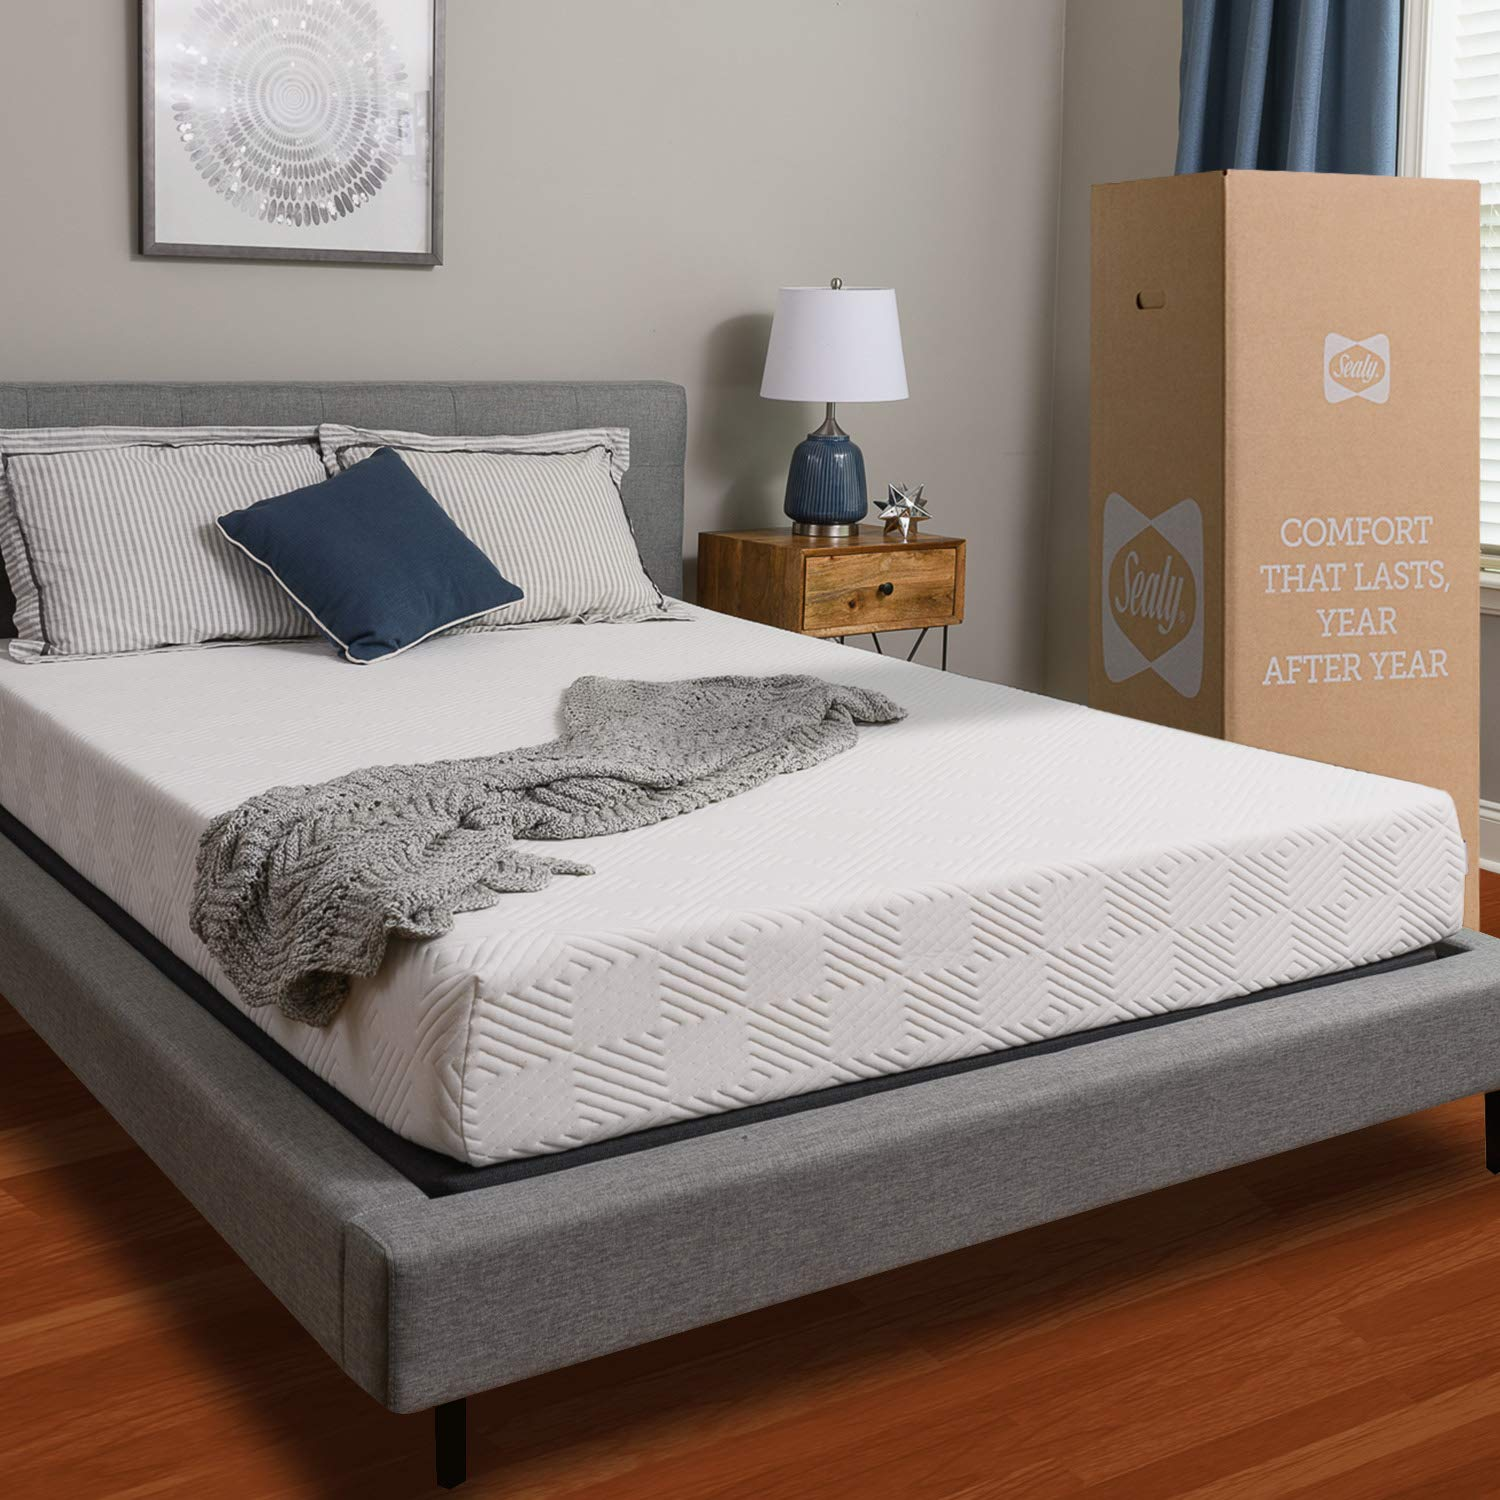 Sealy Mattress Review by www.snoremagazine.com